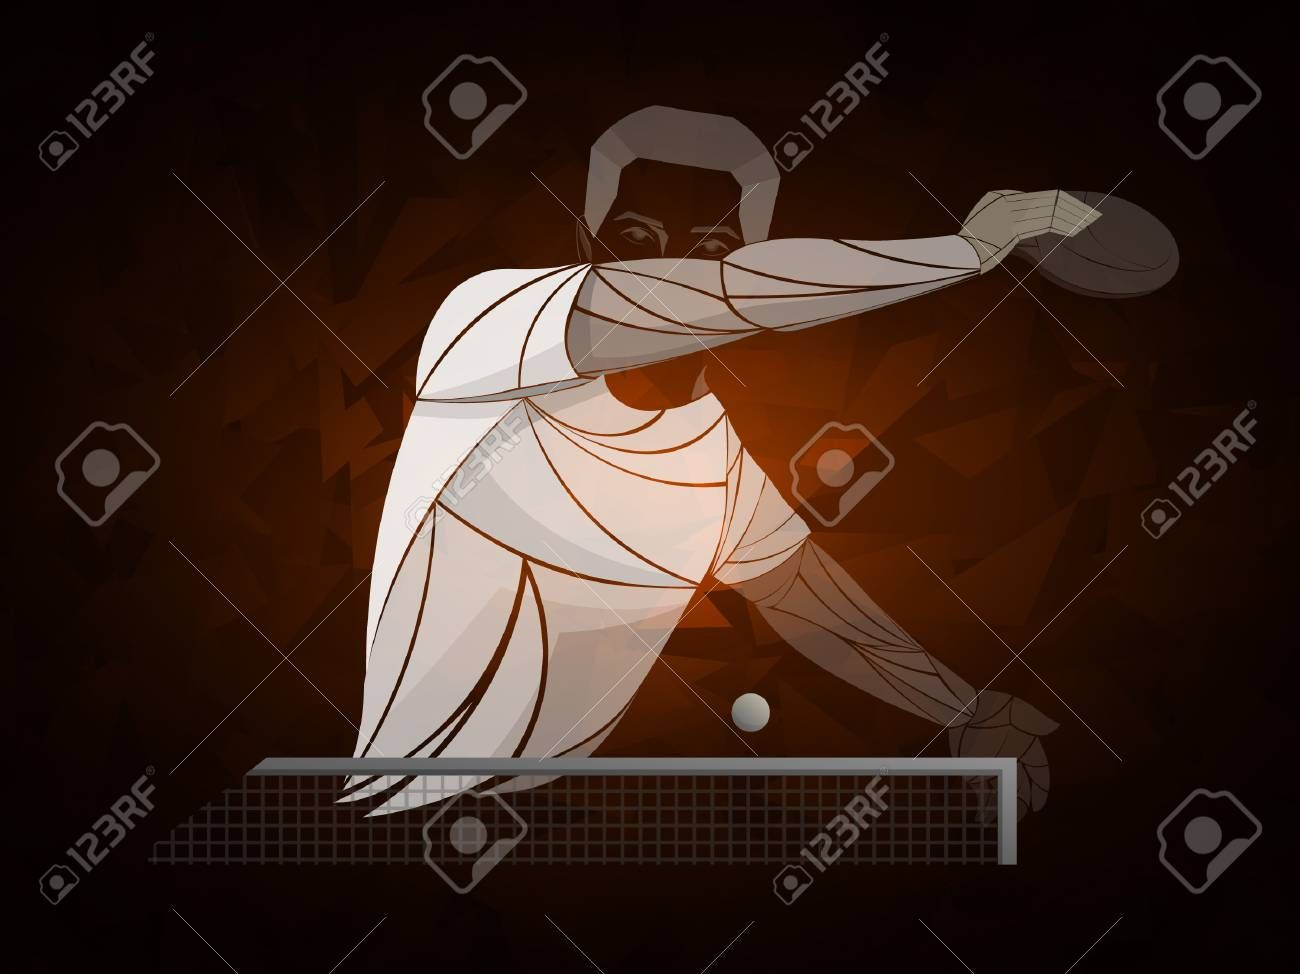 Table Tennis Ping Pong Table Tennis Player Athlete Game Vector Illustration In 2020 Brand Identity Business Cards Professional Business Cards Black Silhouette